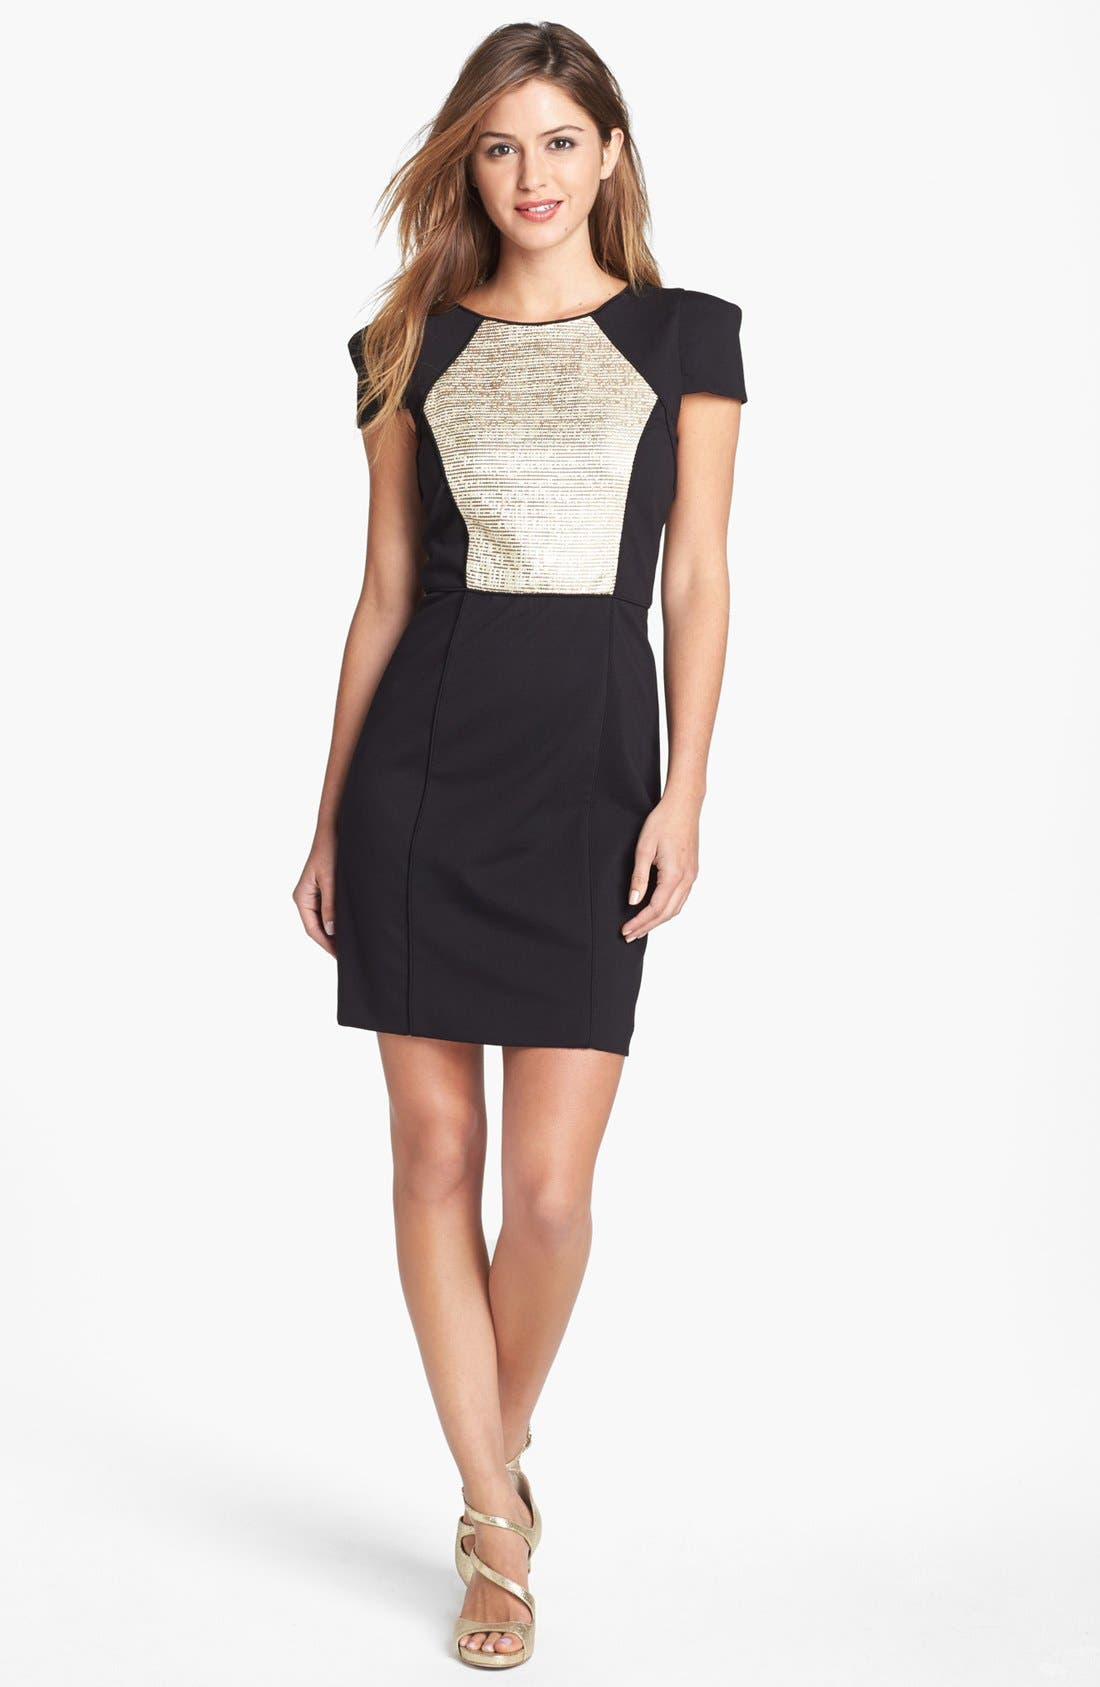 Main Image - 4.collective Metallic Panel Knit Sheath Dress